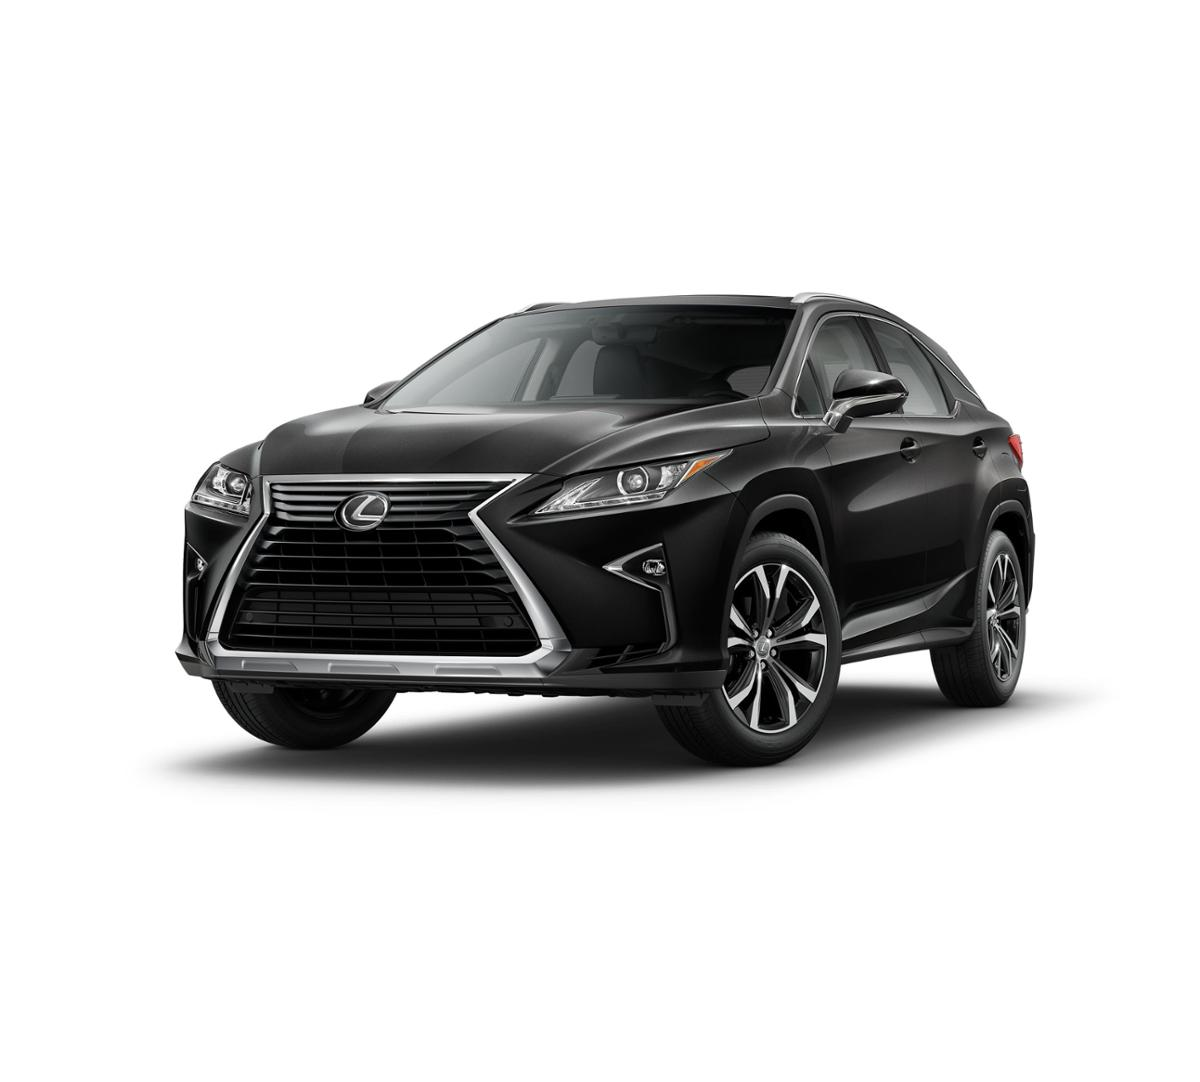 2017 Lexus RX 350 Vehicle Photo in Fort Worth, TX 76132